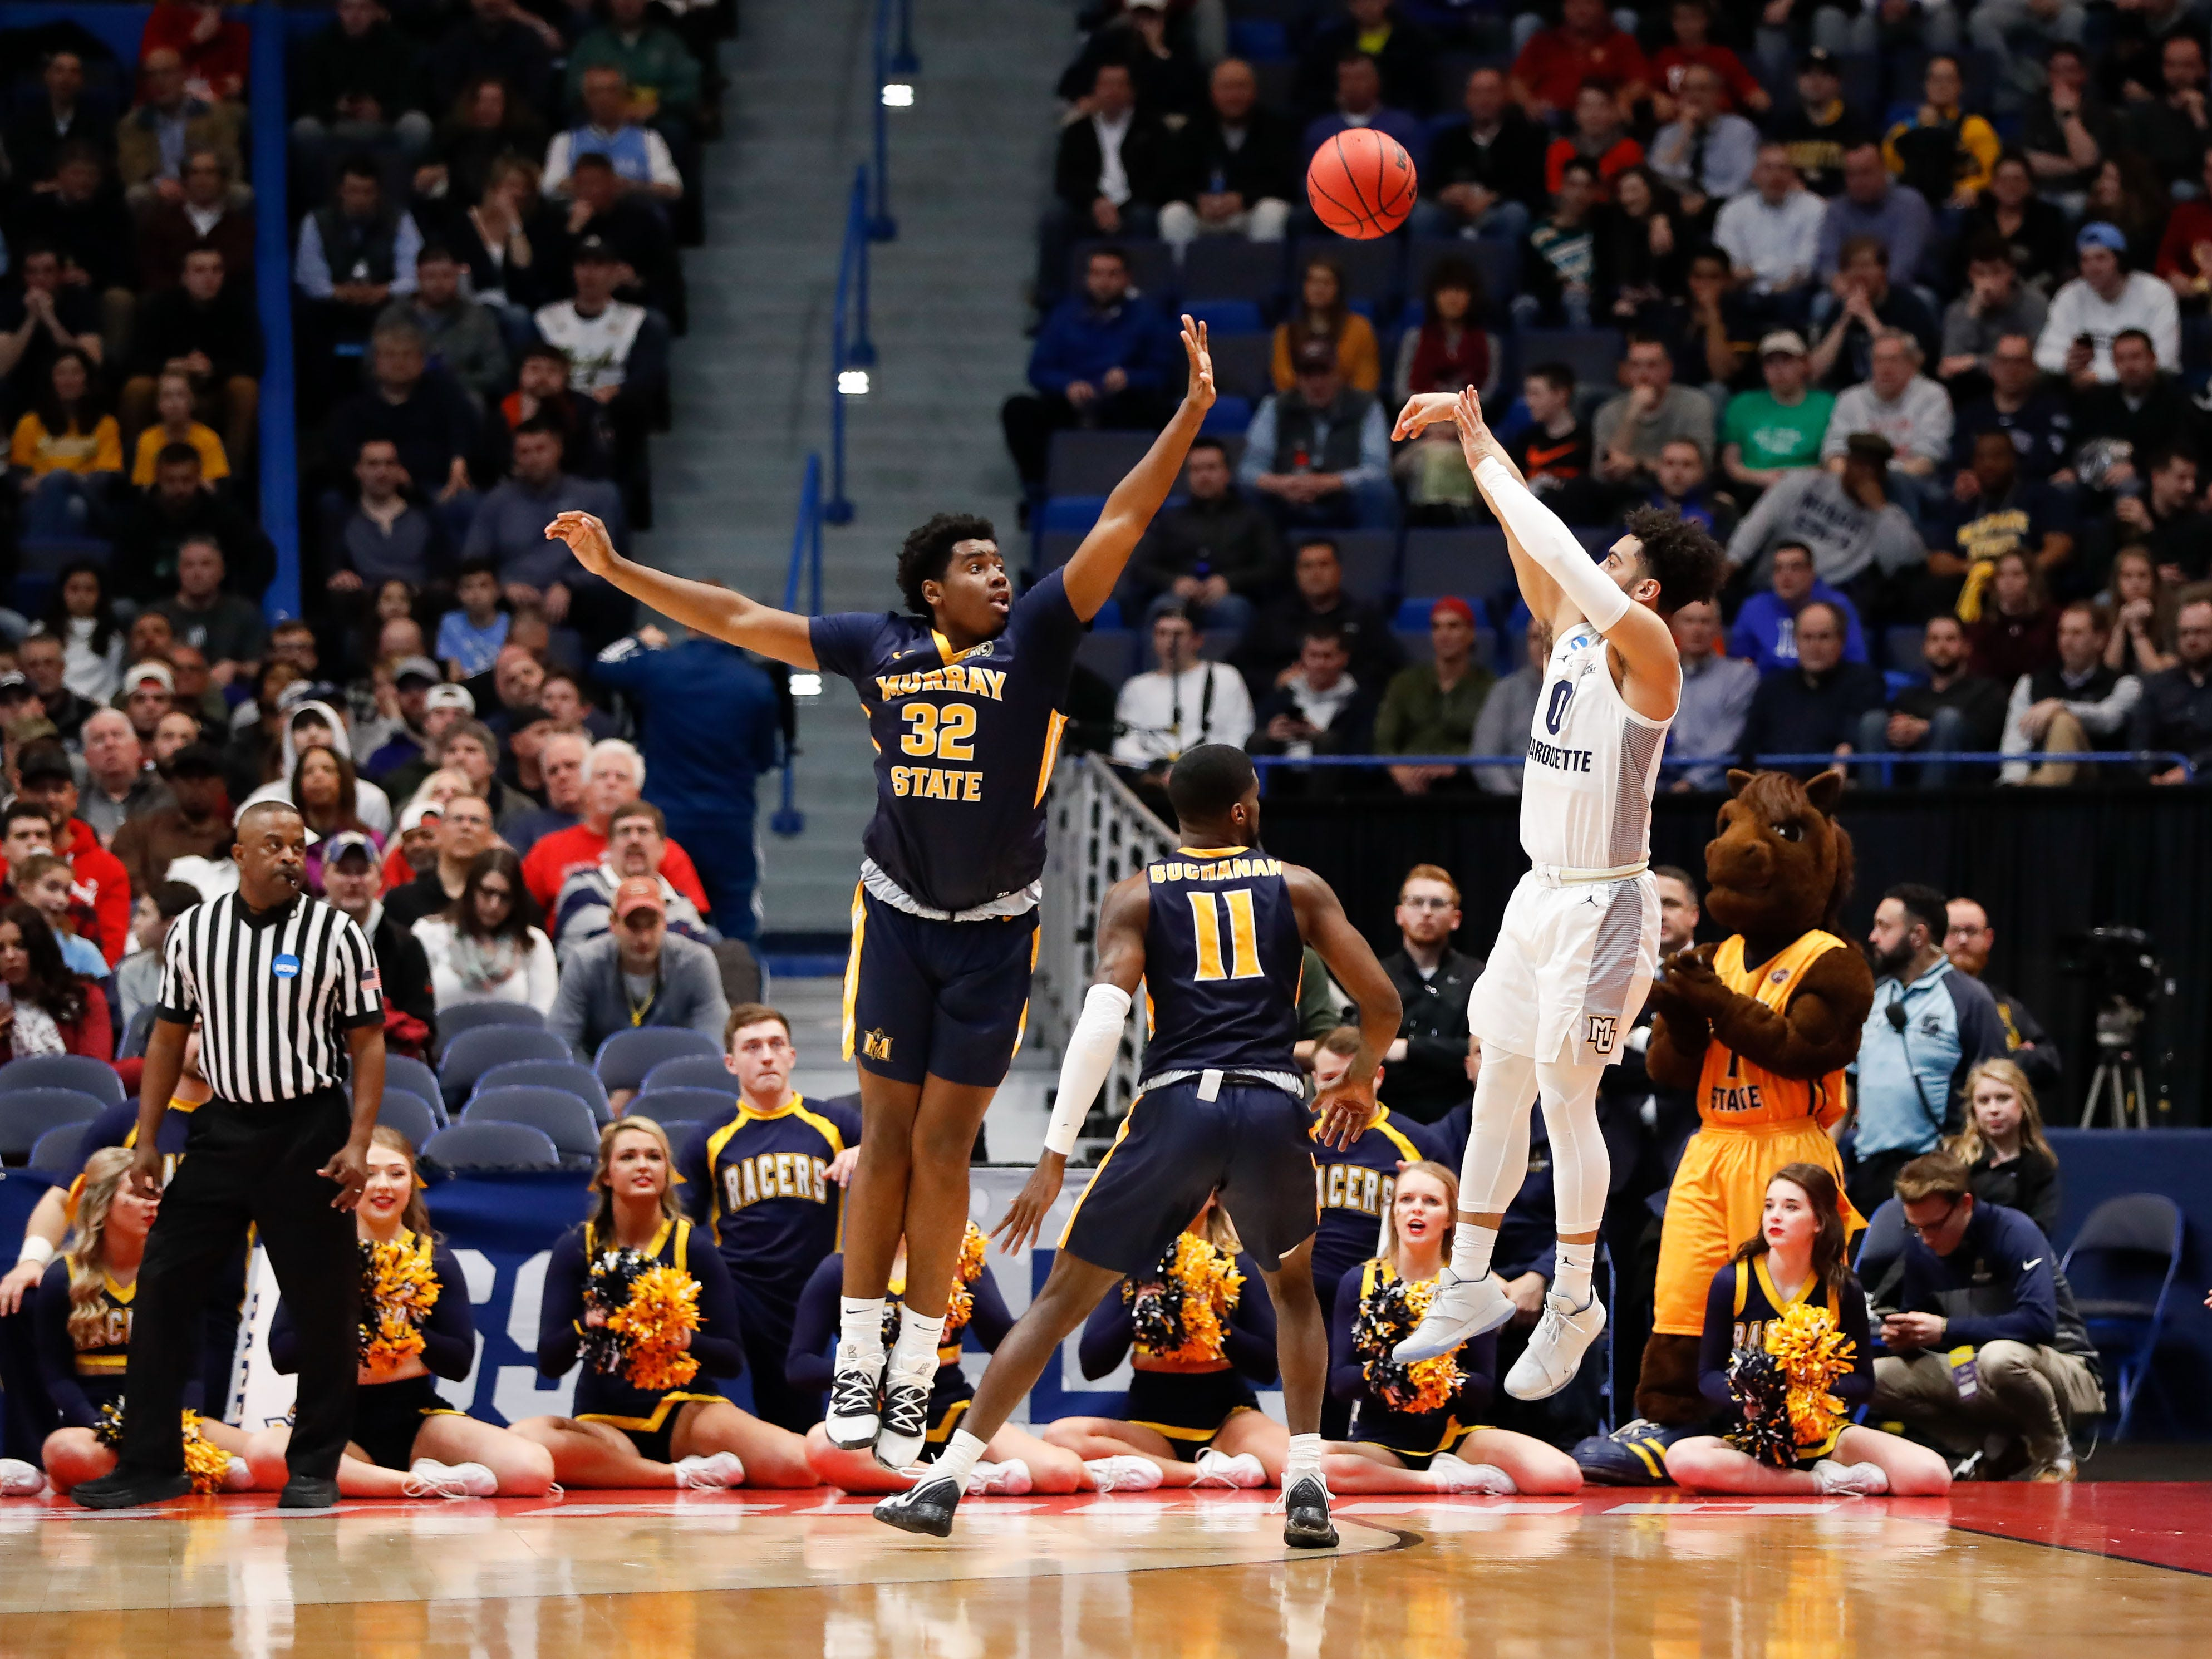 Marquette guard Markus Howard puts up a three-point attempt over Murray State forward Darnell Cowart during the first half.